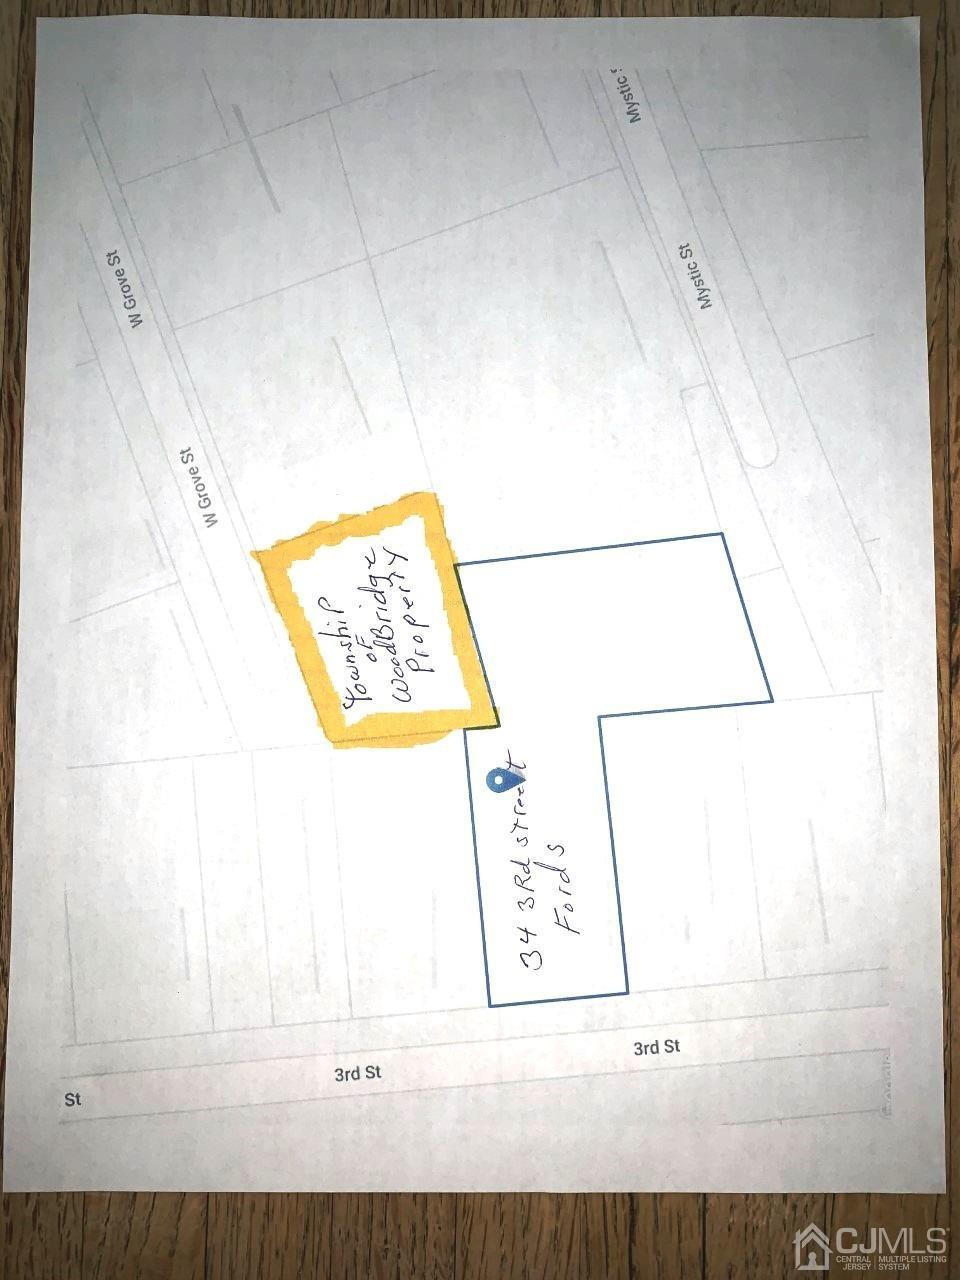 Tax map of Township of woodbridge Adjoining Property